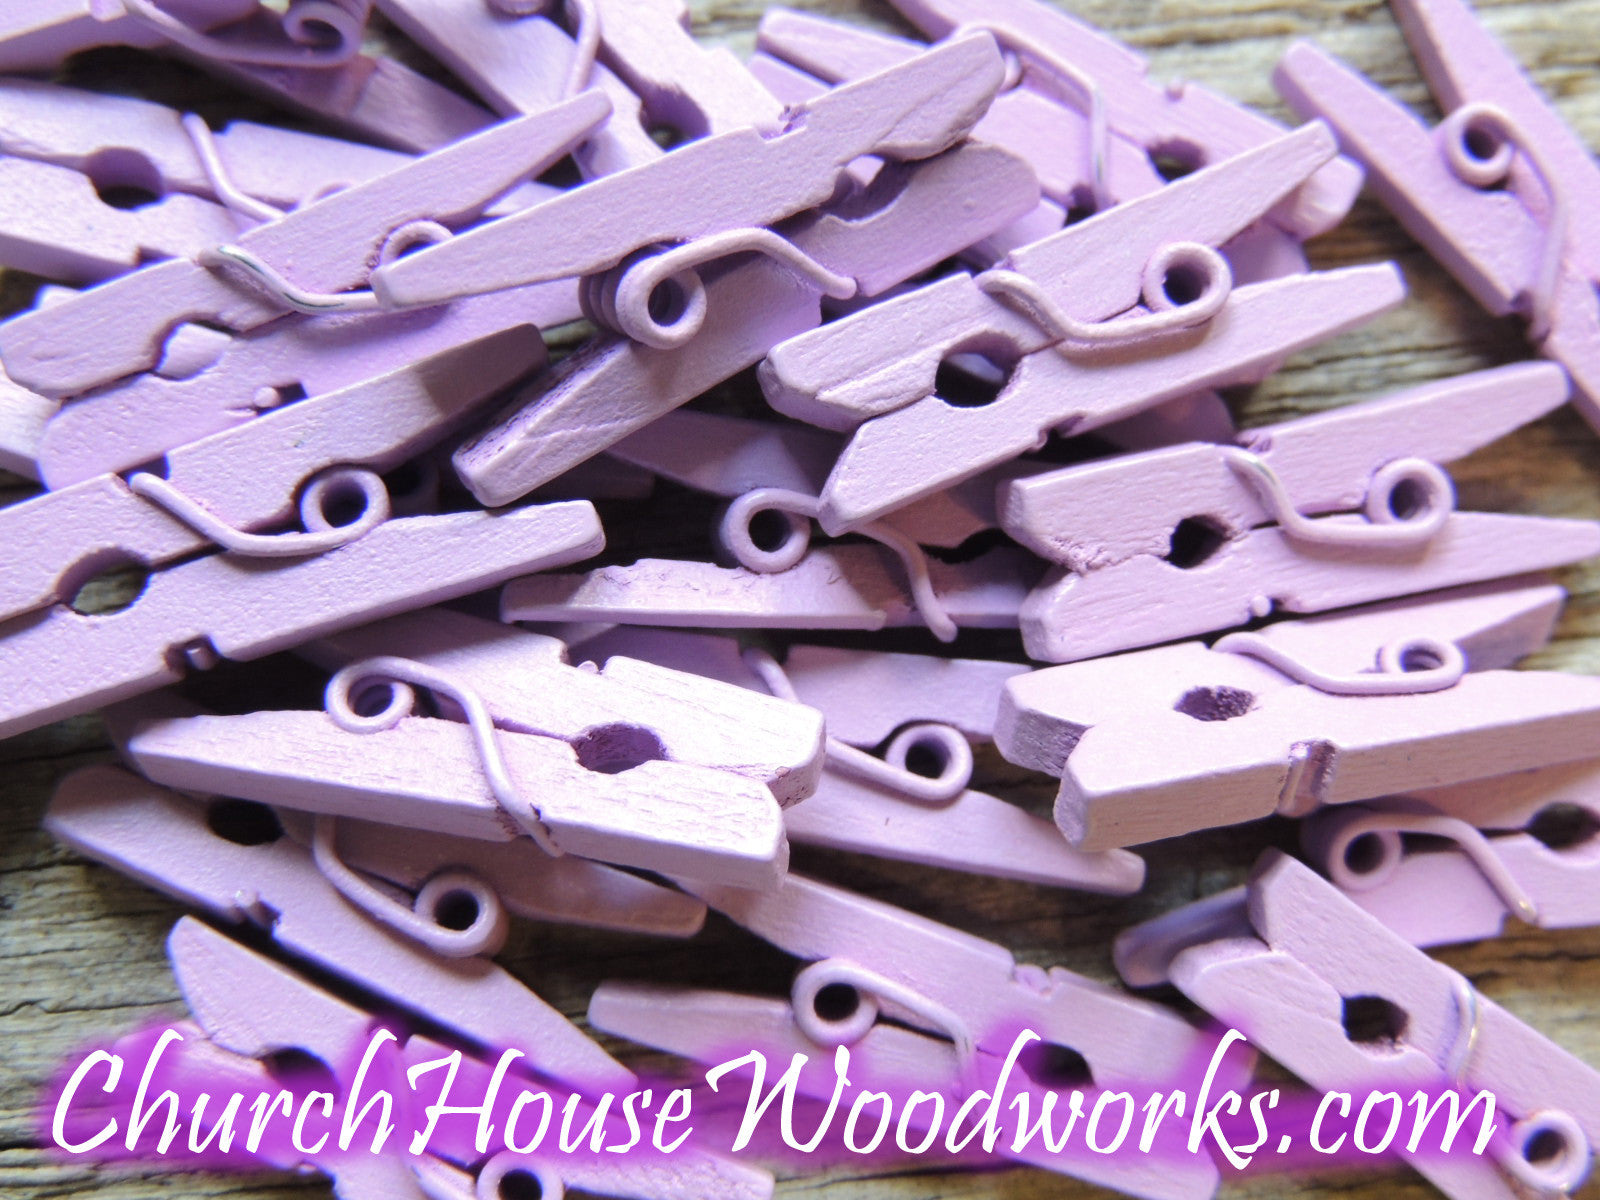 Pack of 100 Mini Lilac Purple Clothespins